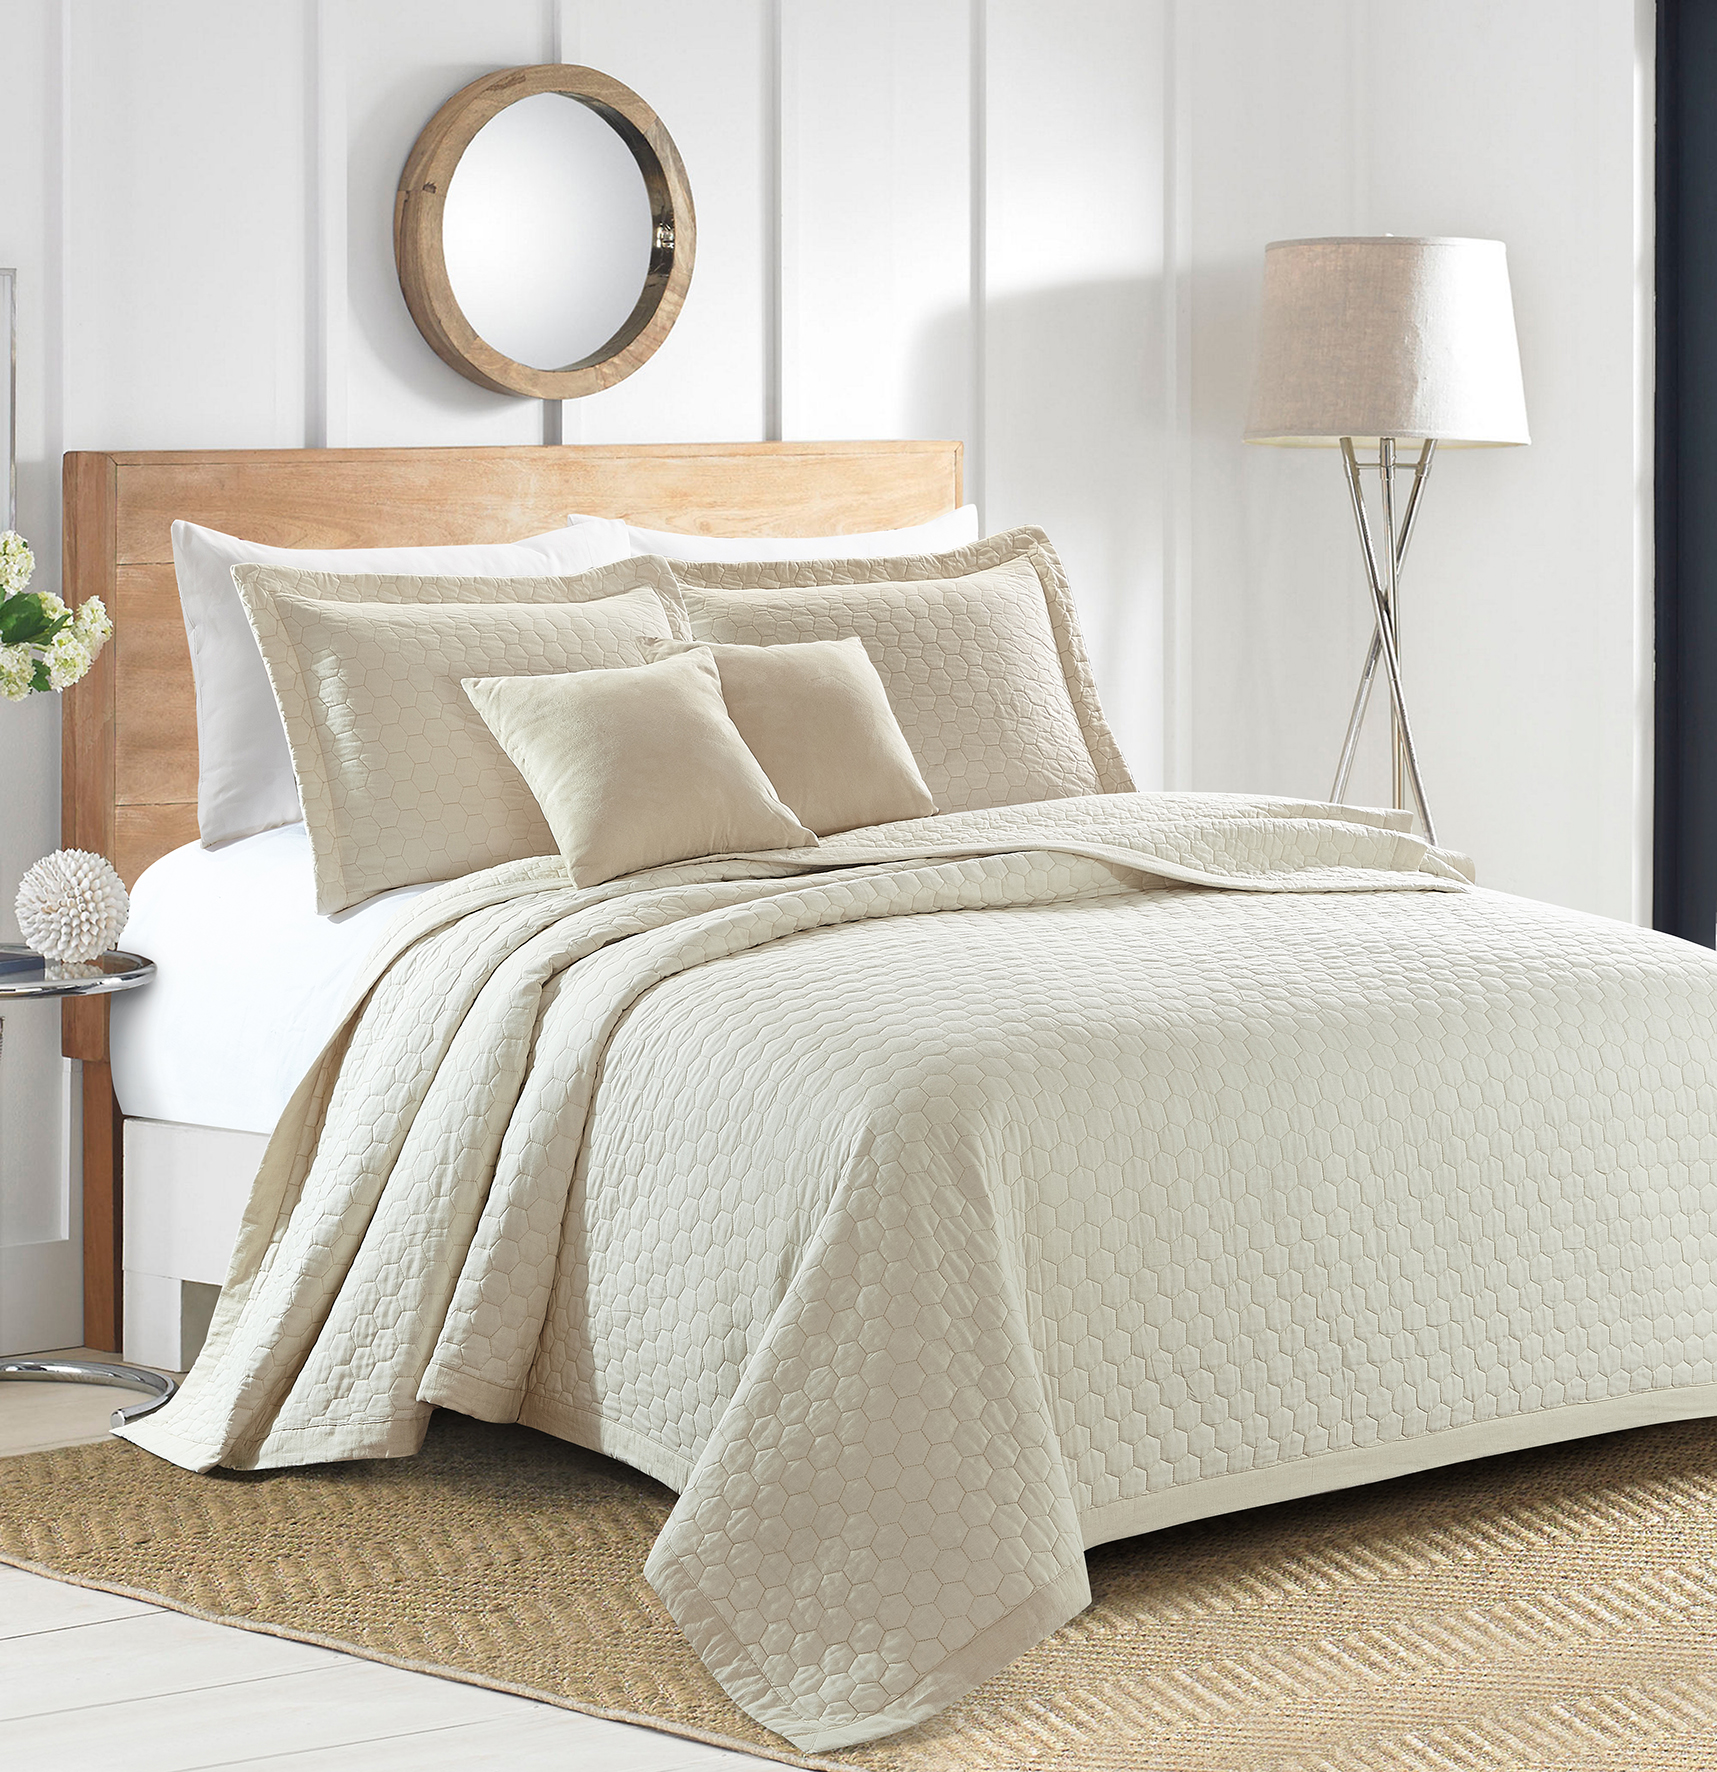 Sherry Kline Rombo Embroidered 3-piece Cream Queen Cotton Quilt Set